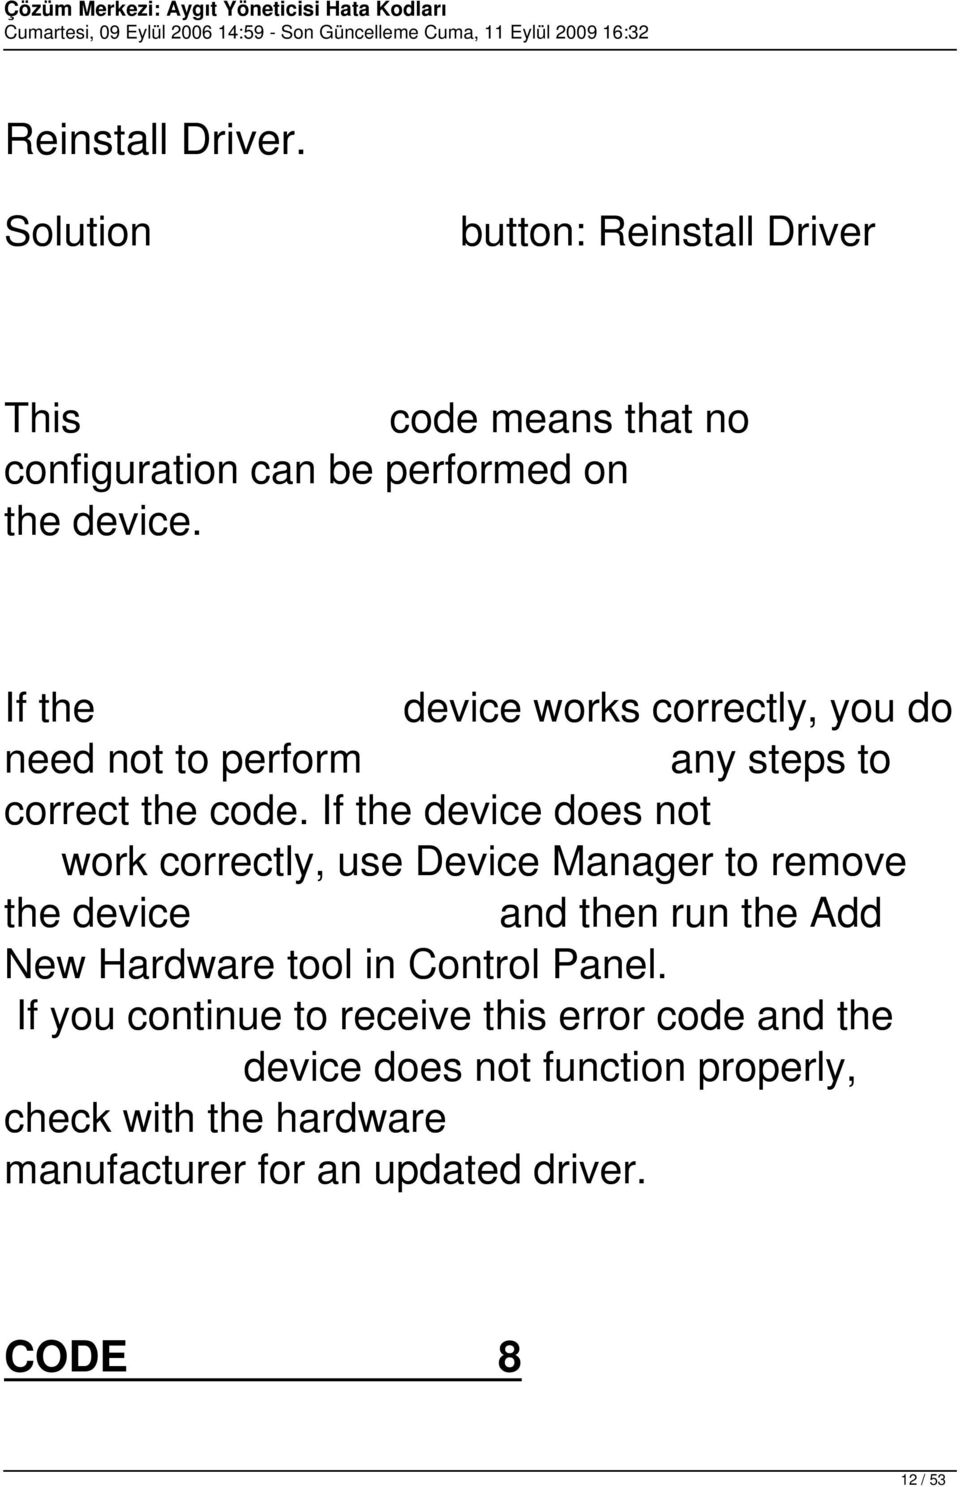 If the device does not work correctly, use Device Manager to remove the device and then run the Add New Hardware tool in